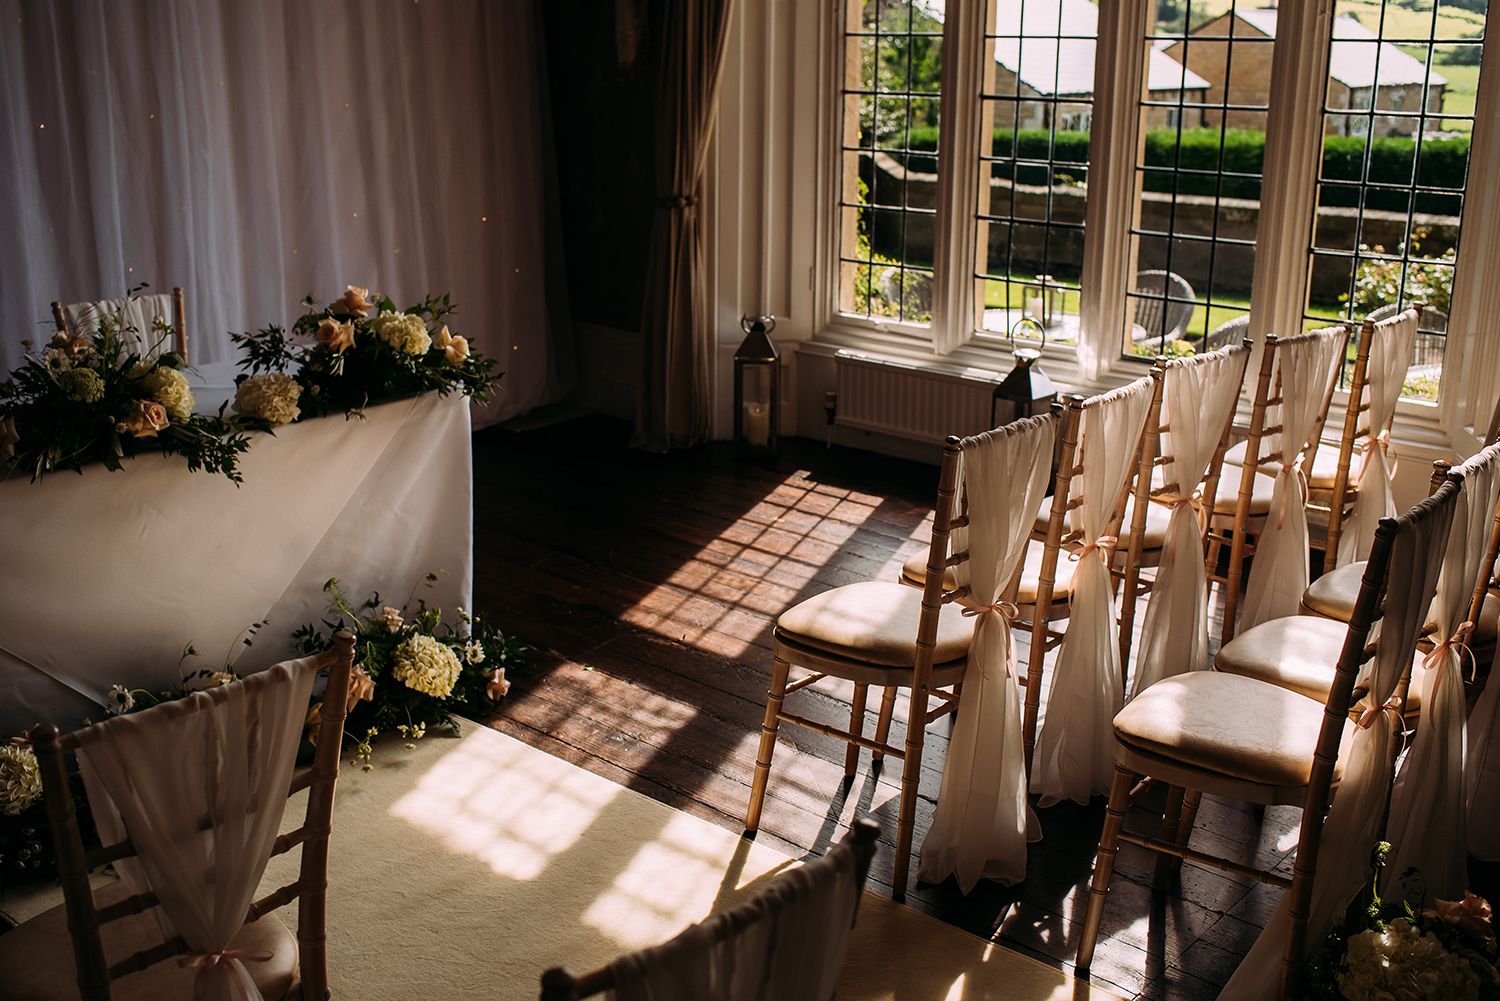 light coming in through the ceremony room and shining on the chairs